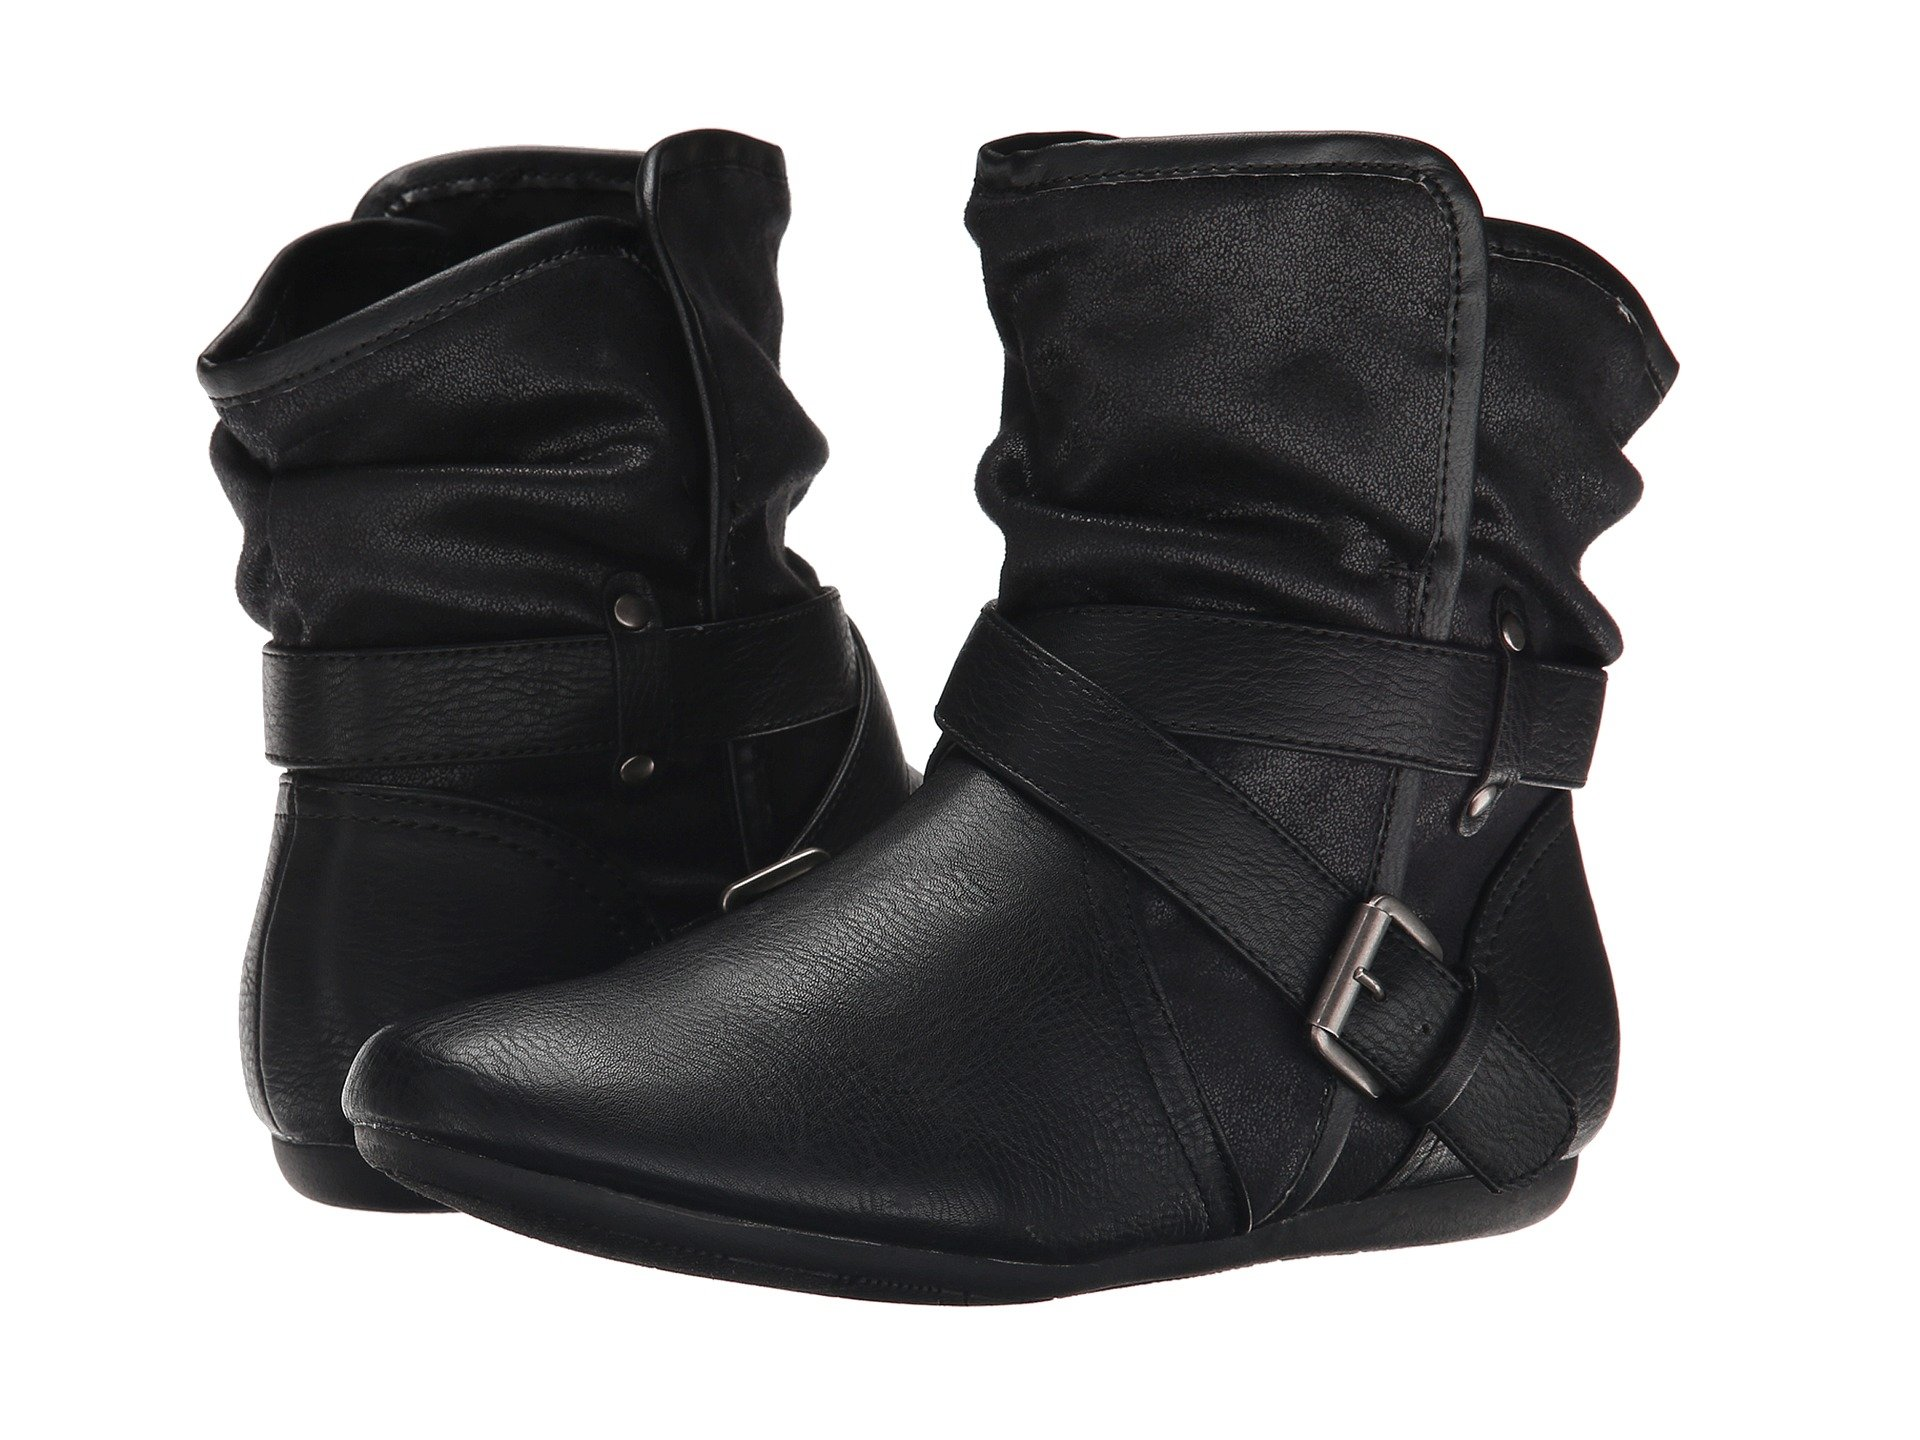 2c5ac96d190 Women s Report Boots + FREE SHIPPING